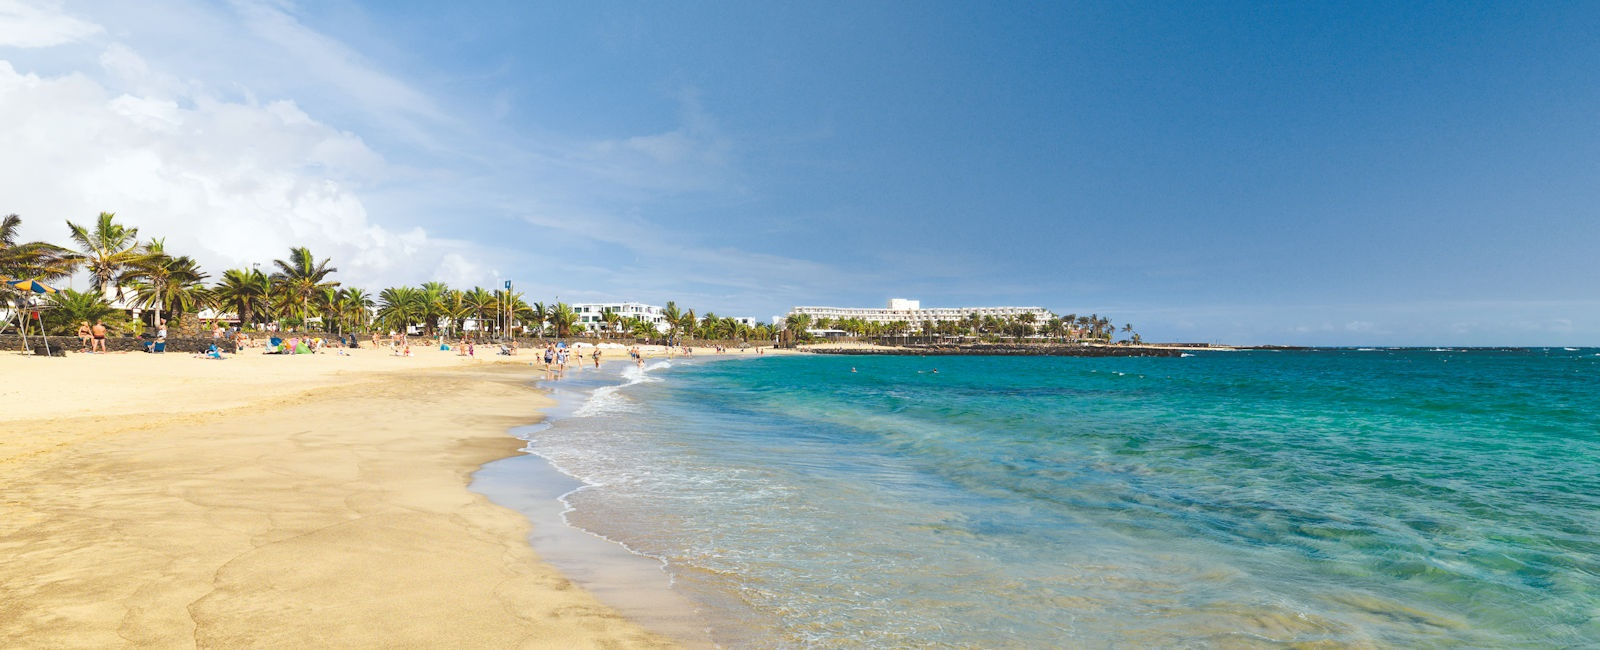 Luxury Costa Teguise Holidays